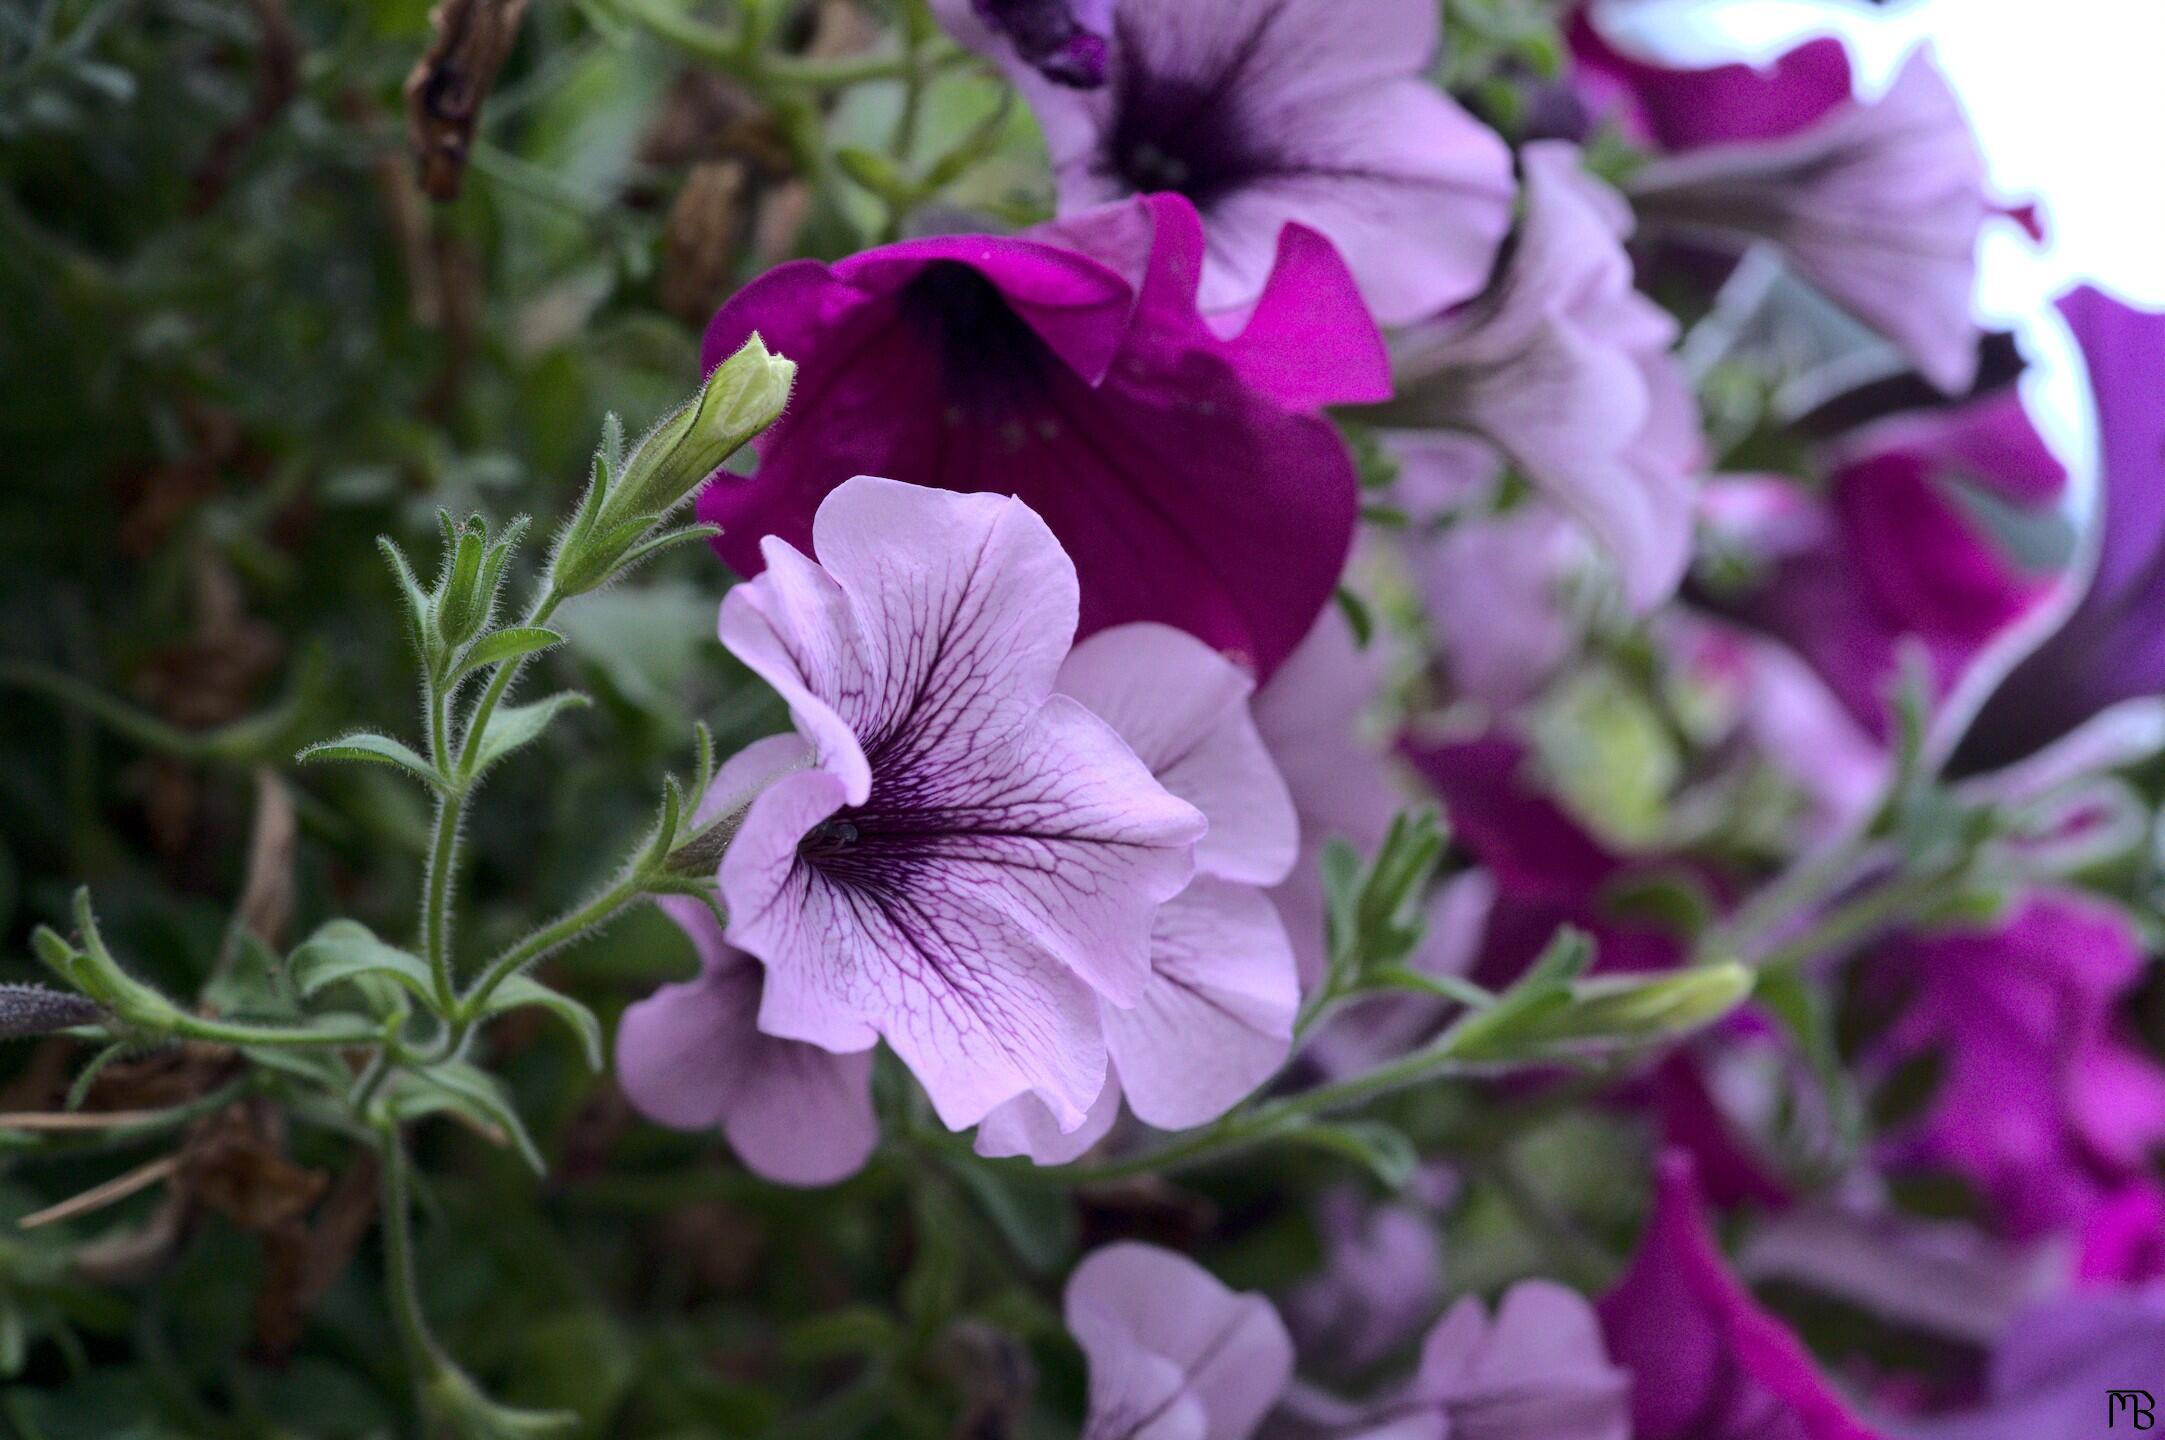 Pink and purple flowers hanging from a planter